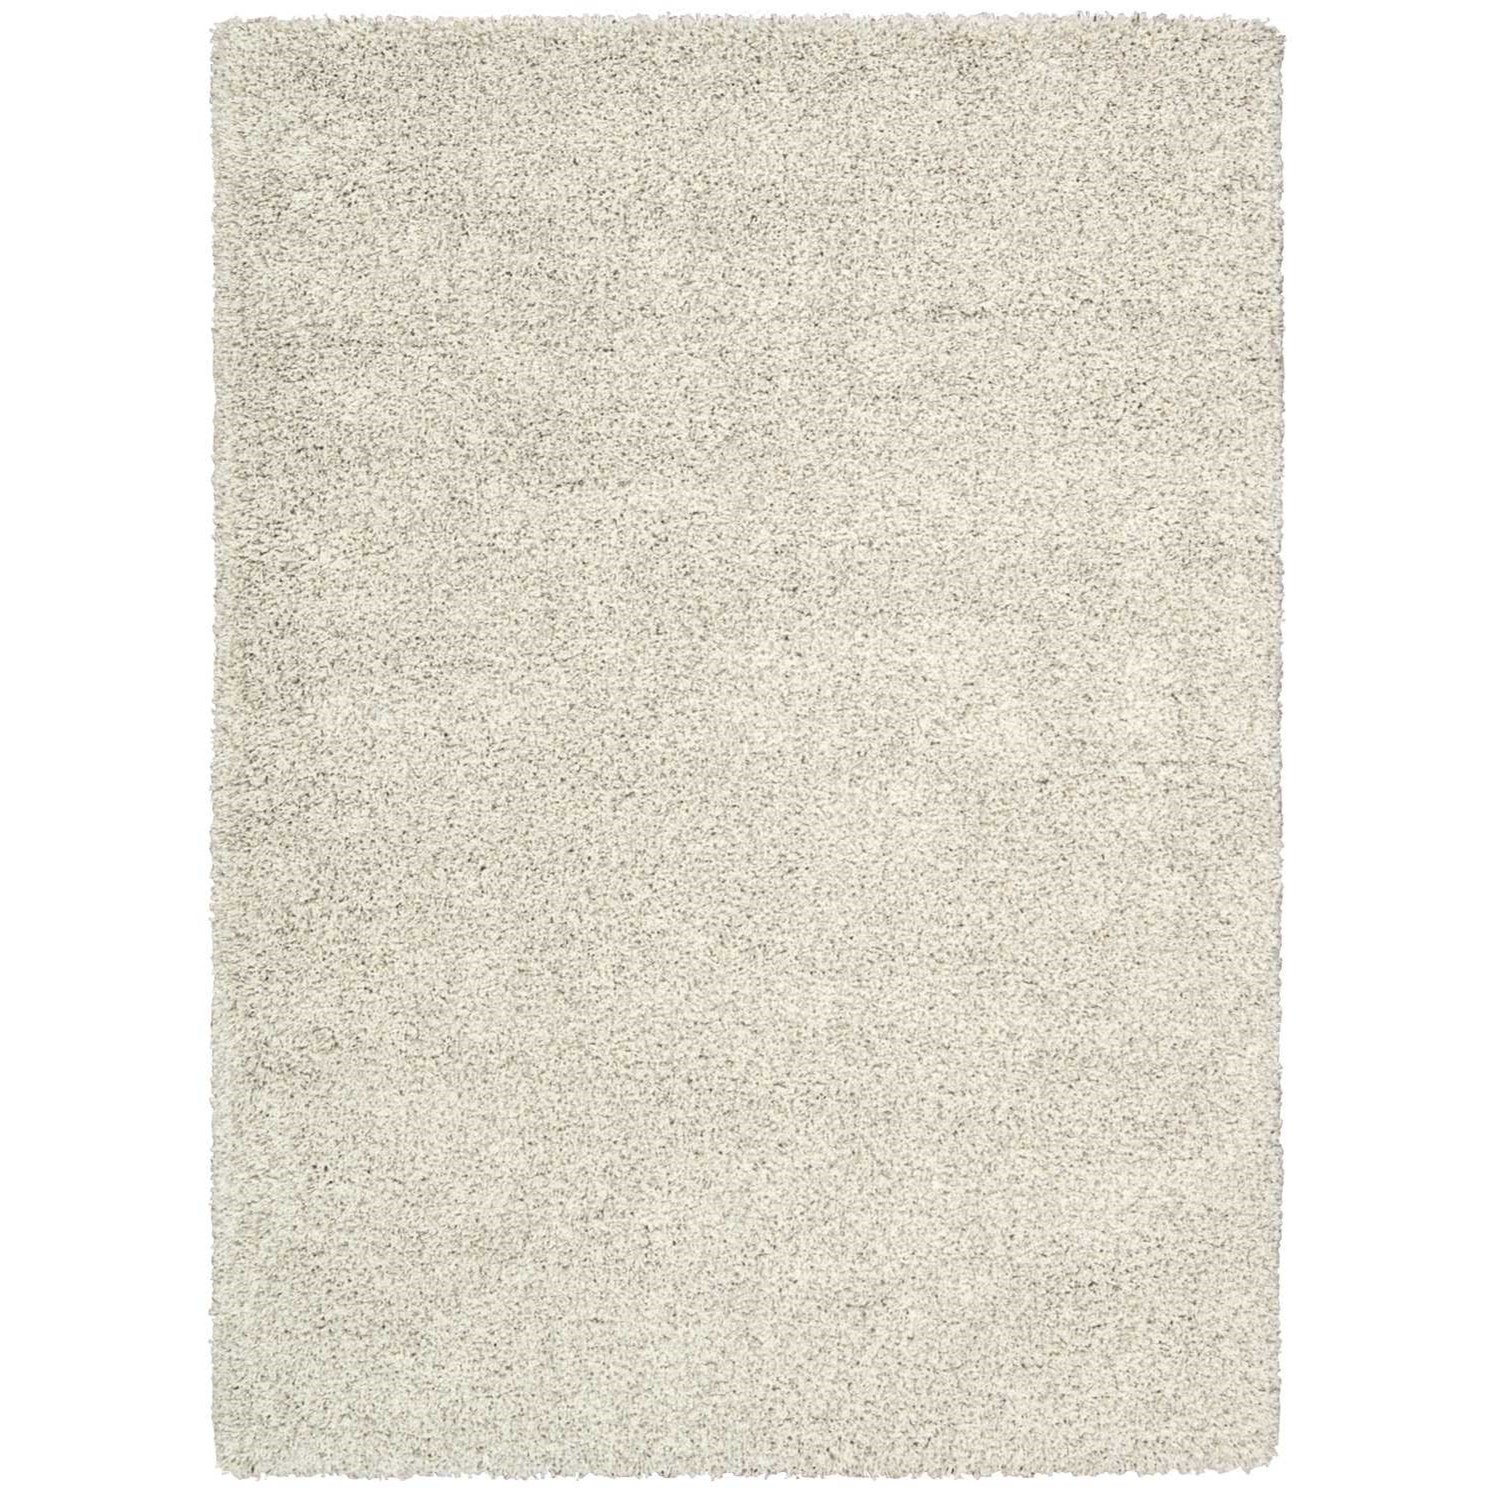 "Amore 3'11"" x 5'11"" Bone Rectangle Rug by Nourison at Sprintz Furniture"